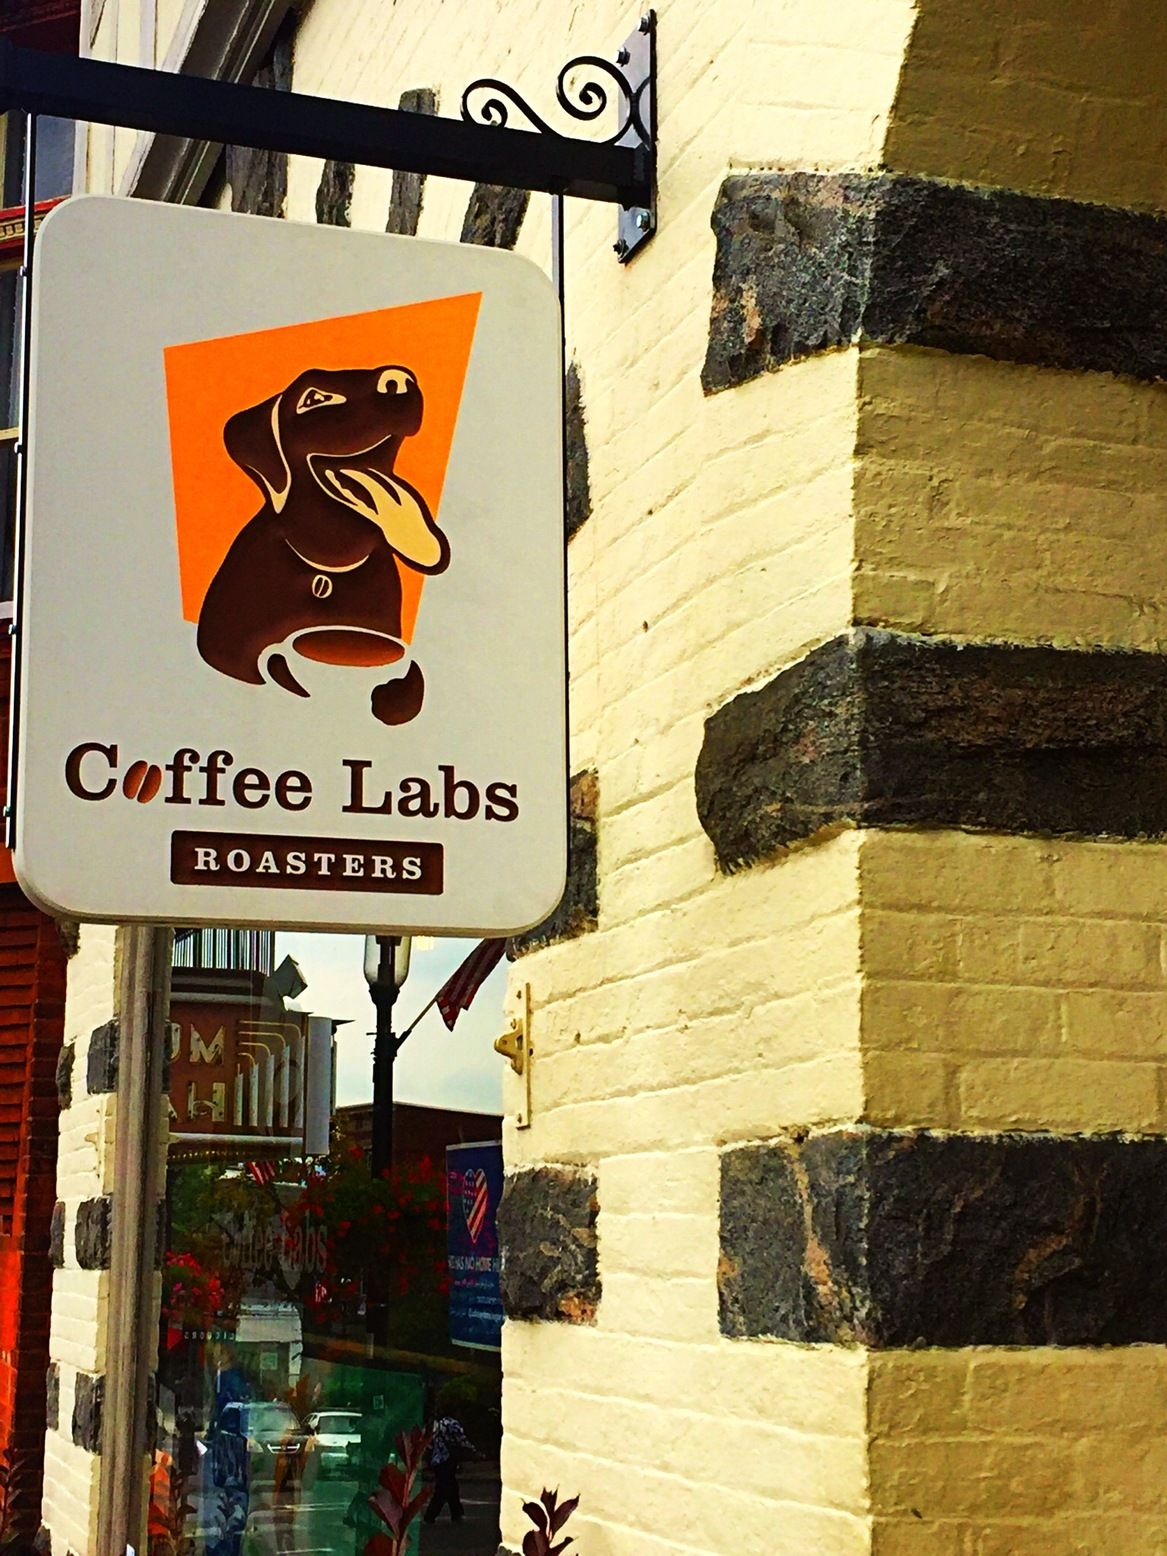 Lab Roasters in Tarrytown in New York, USA